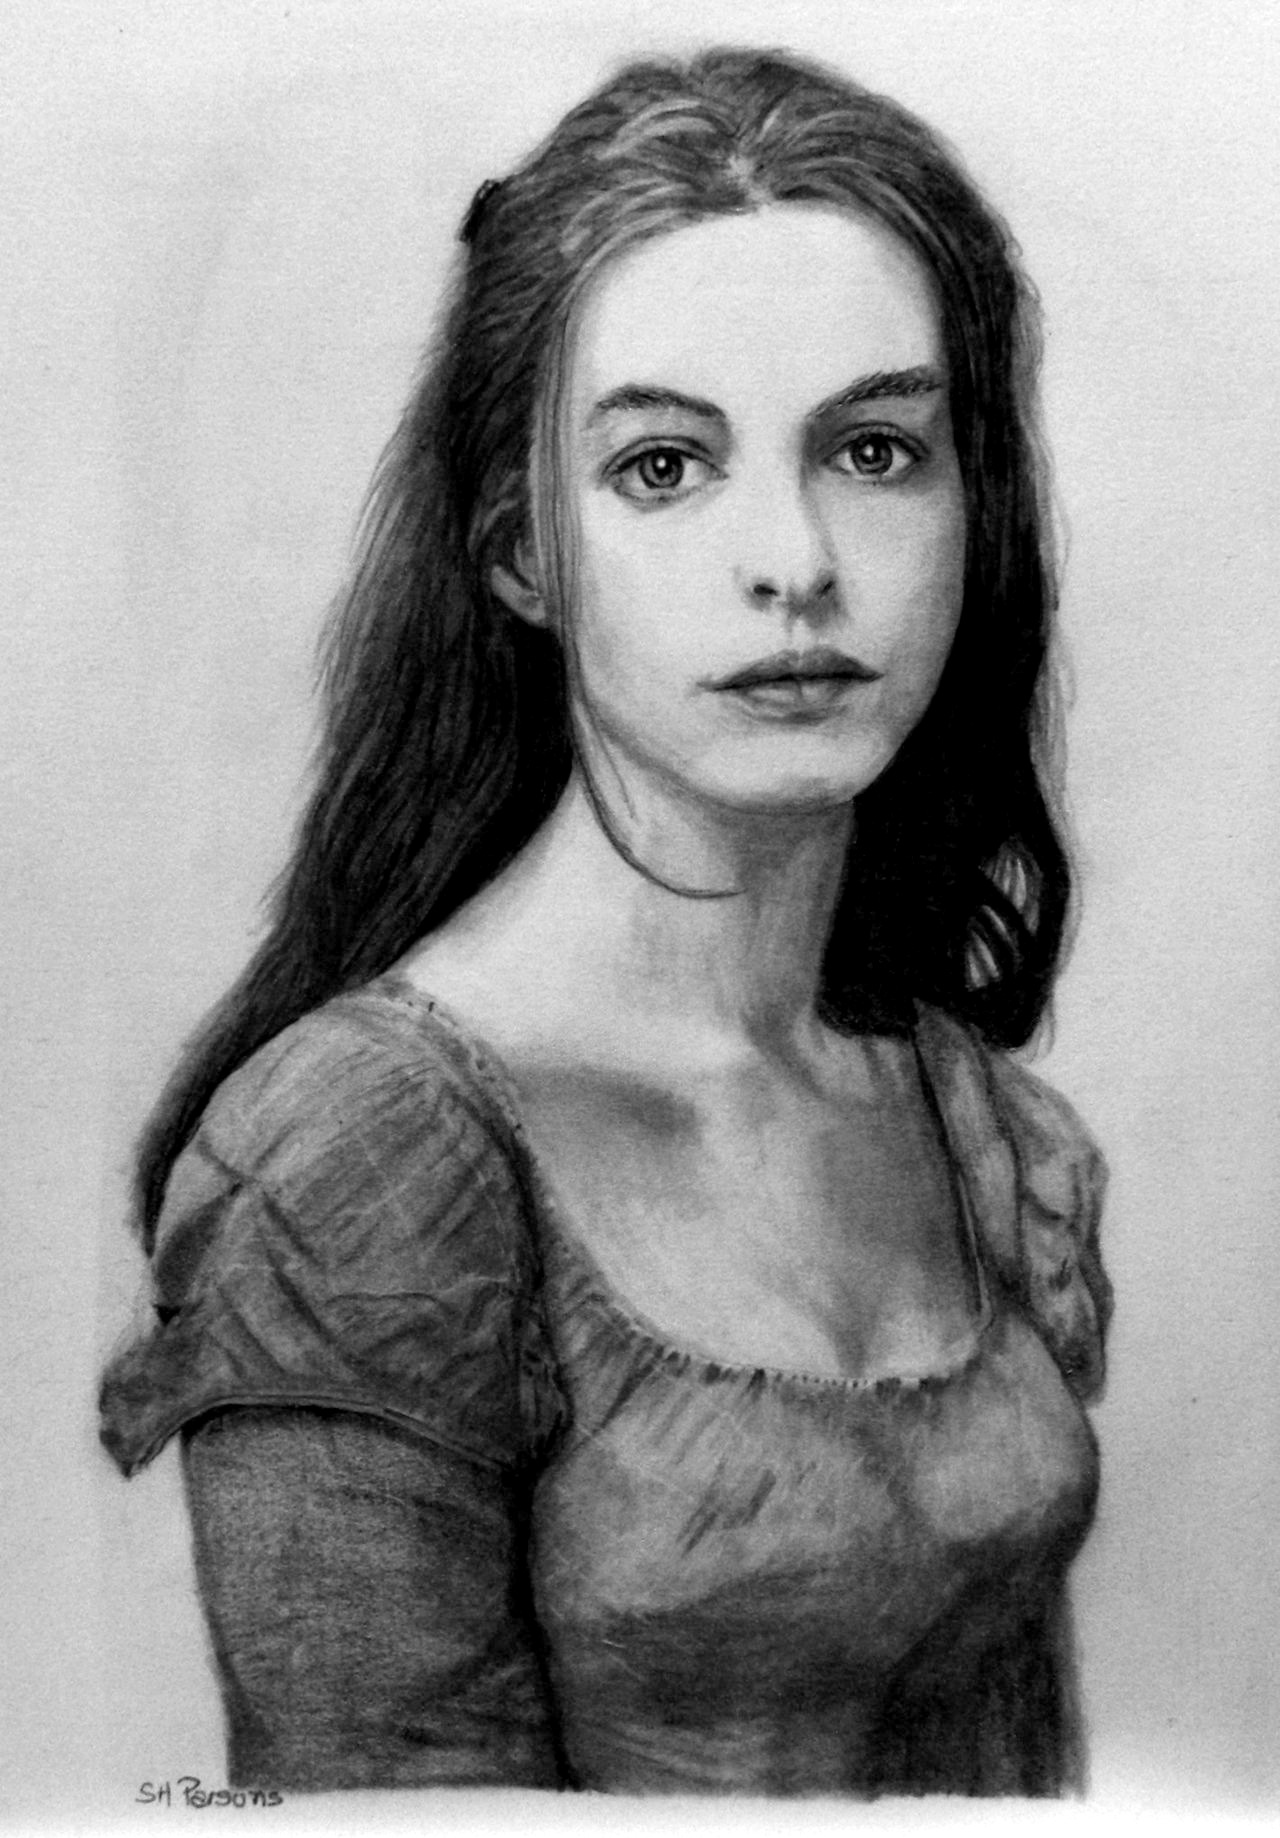 Drawn women anne hathaway Pencil Miserables :Les (re) Miserables